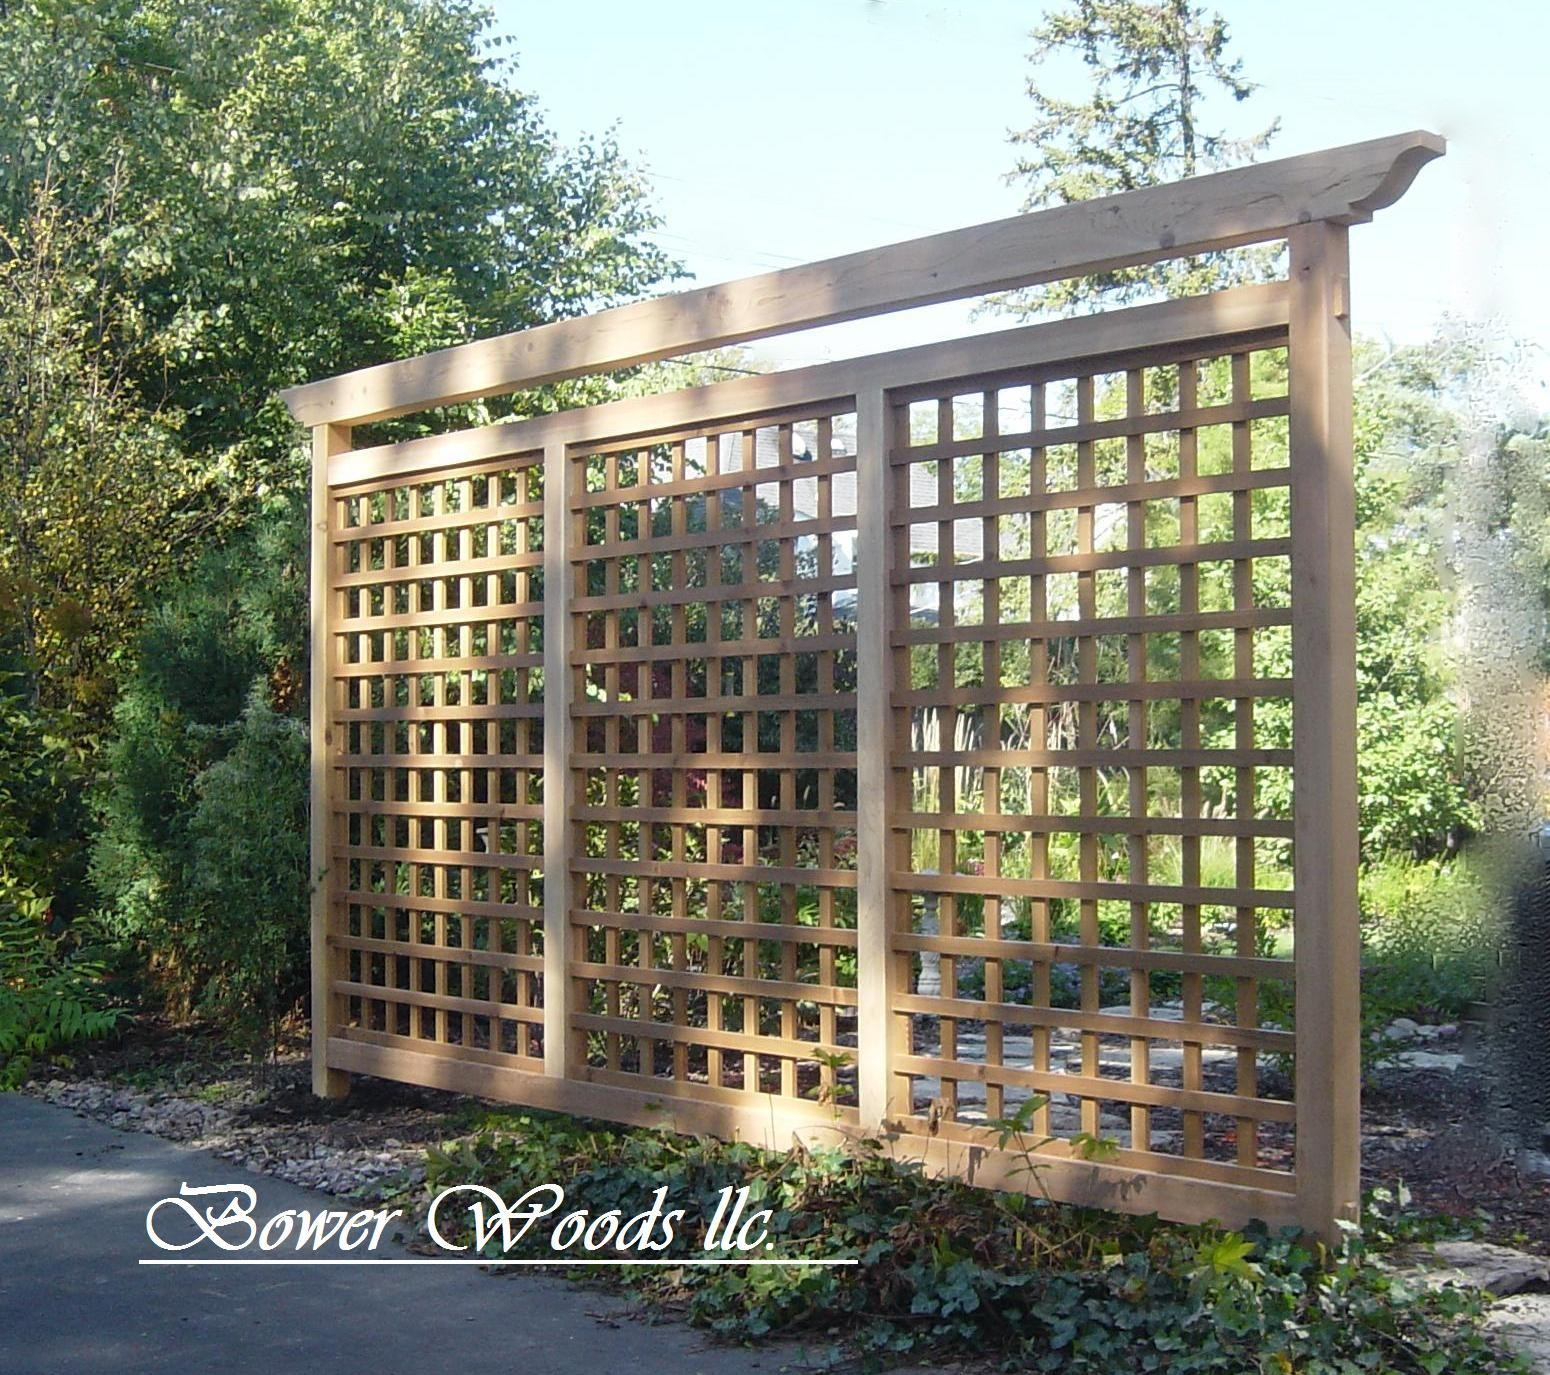 Build Custom Home Online Bower Woods Llc Custom Garden Structures Tuscan Trellis